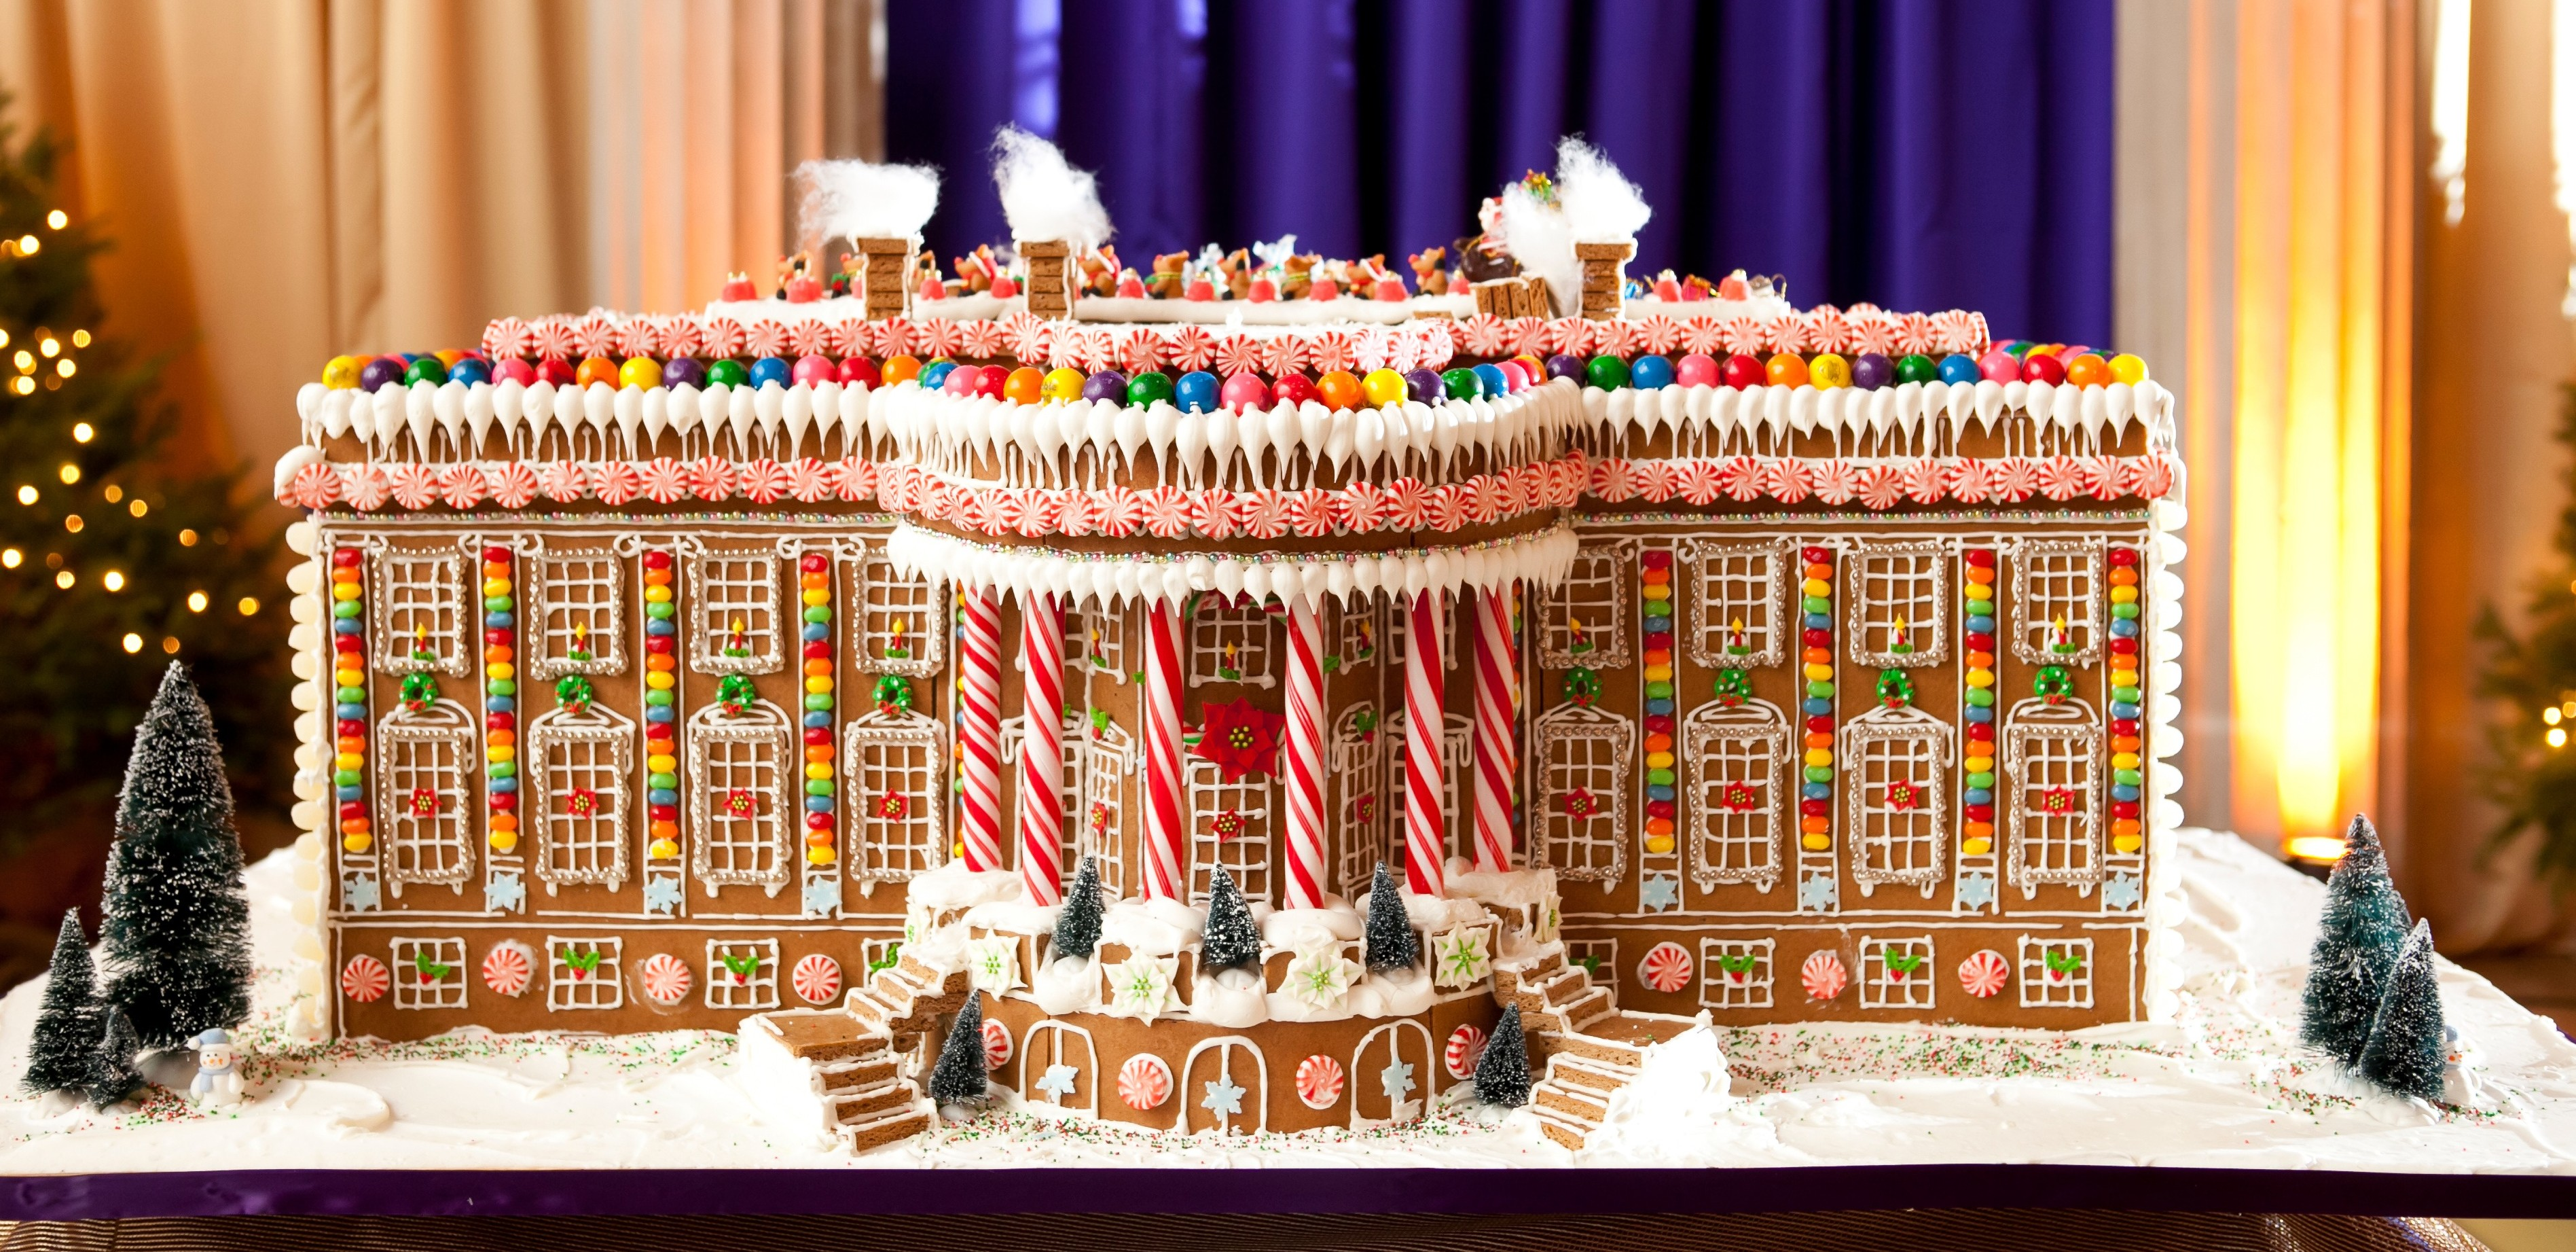 Premade Gingerbread Houses Buying Guide Gingerbread Houses The Ribthe Rib